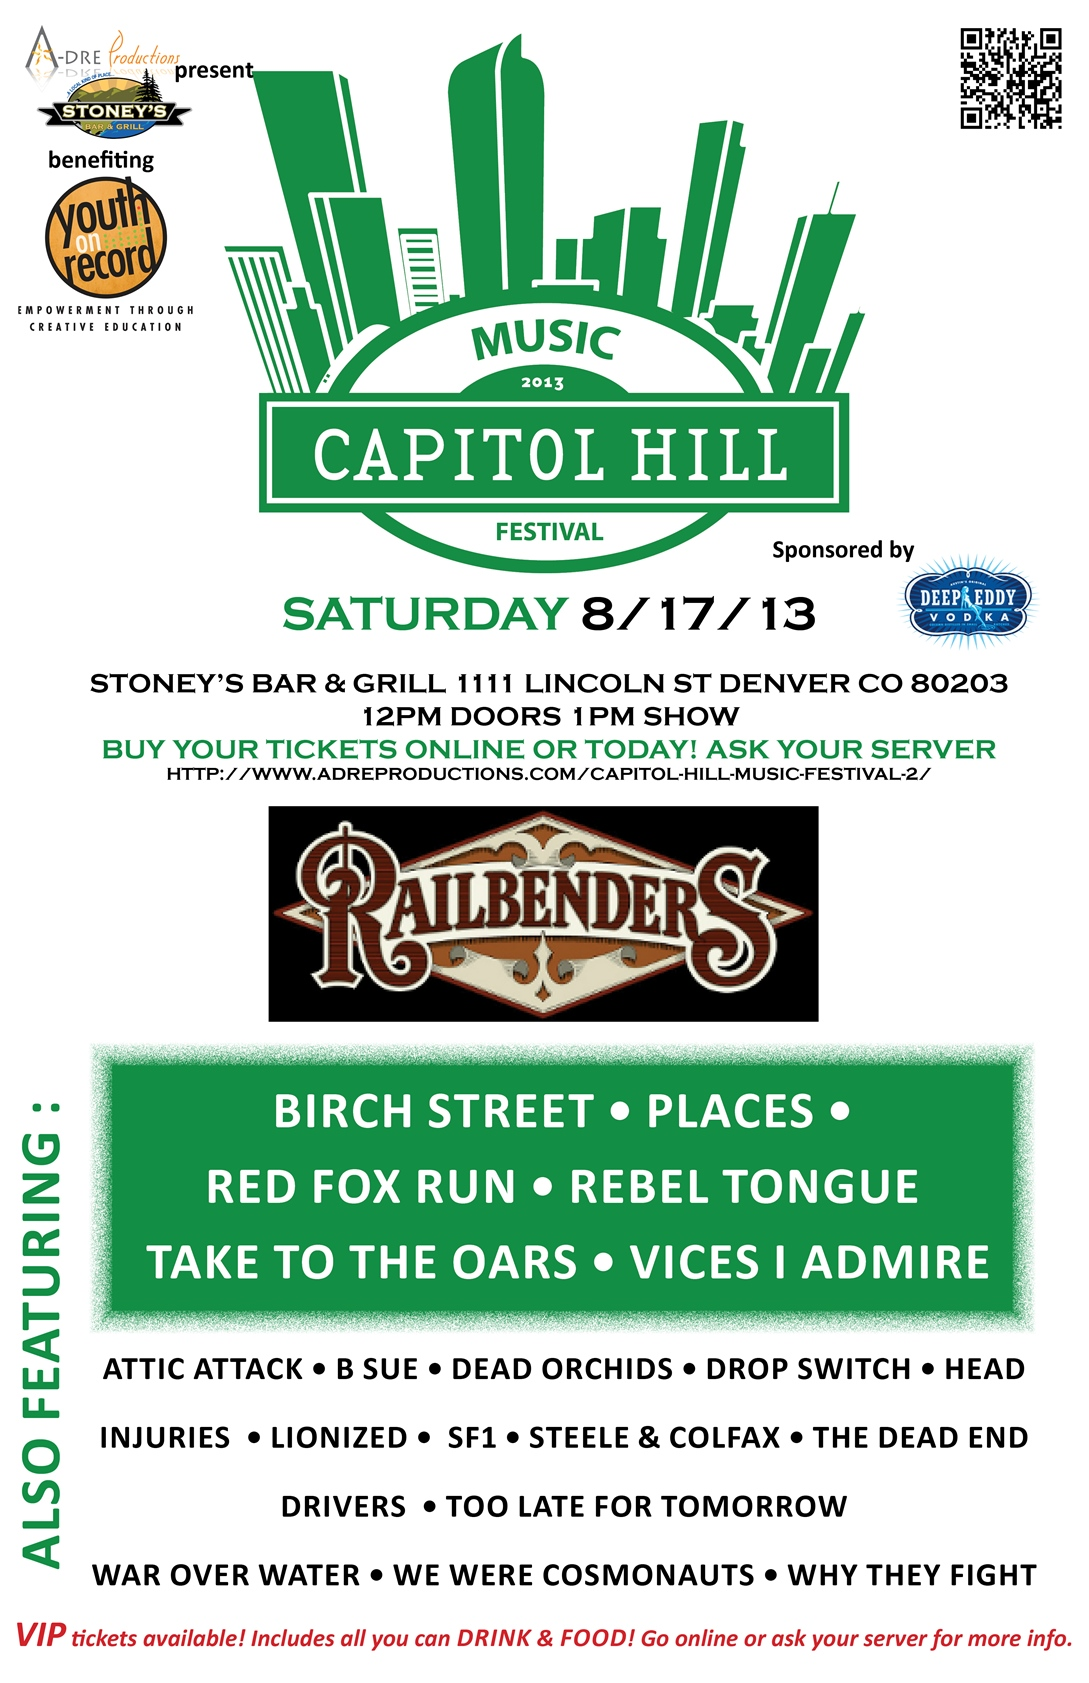 Capitol Hill Music Festival Poster Final - 1089 x 1683